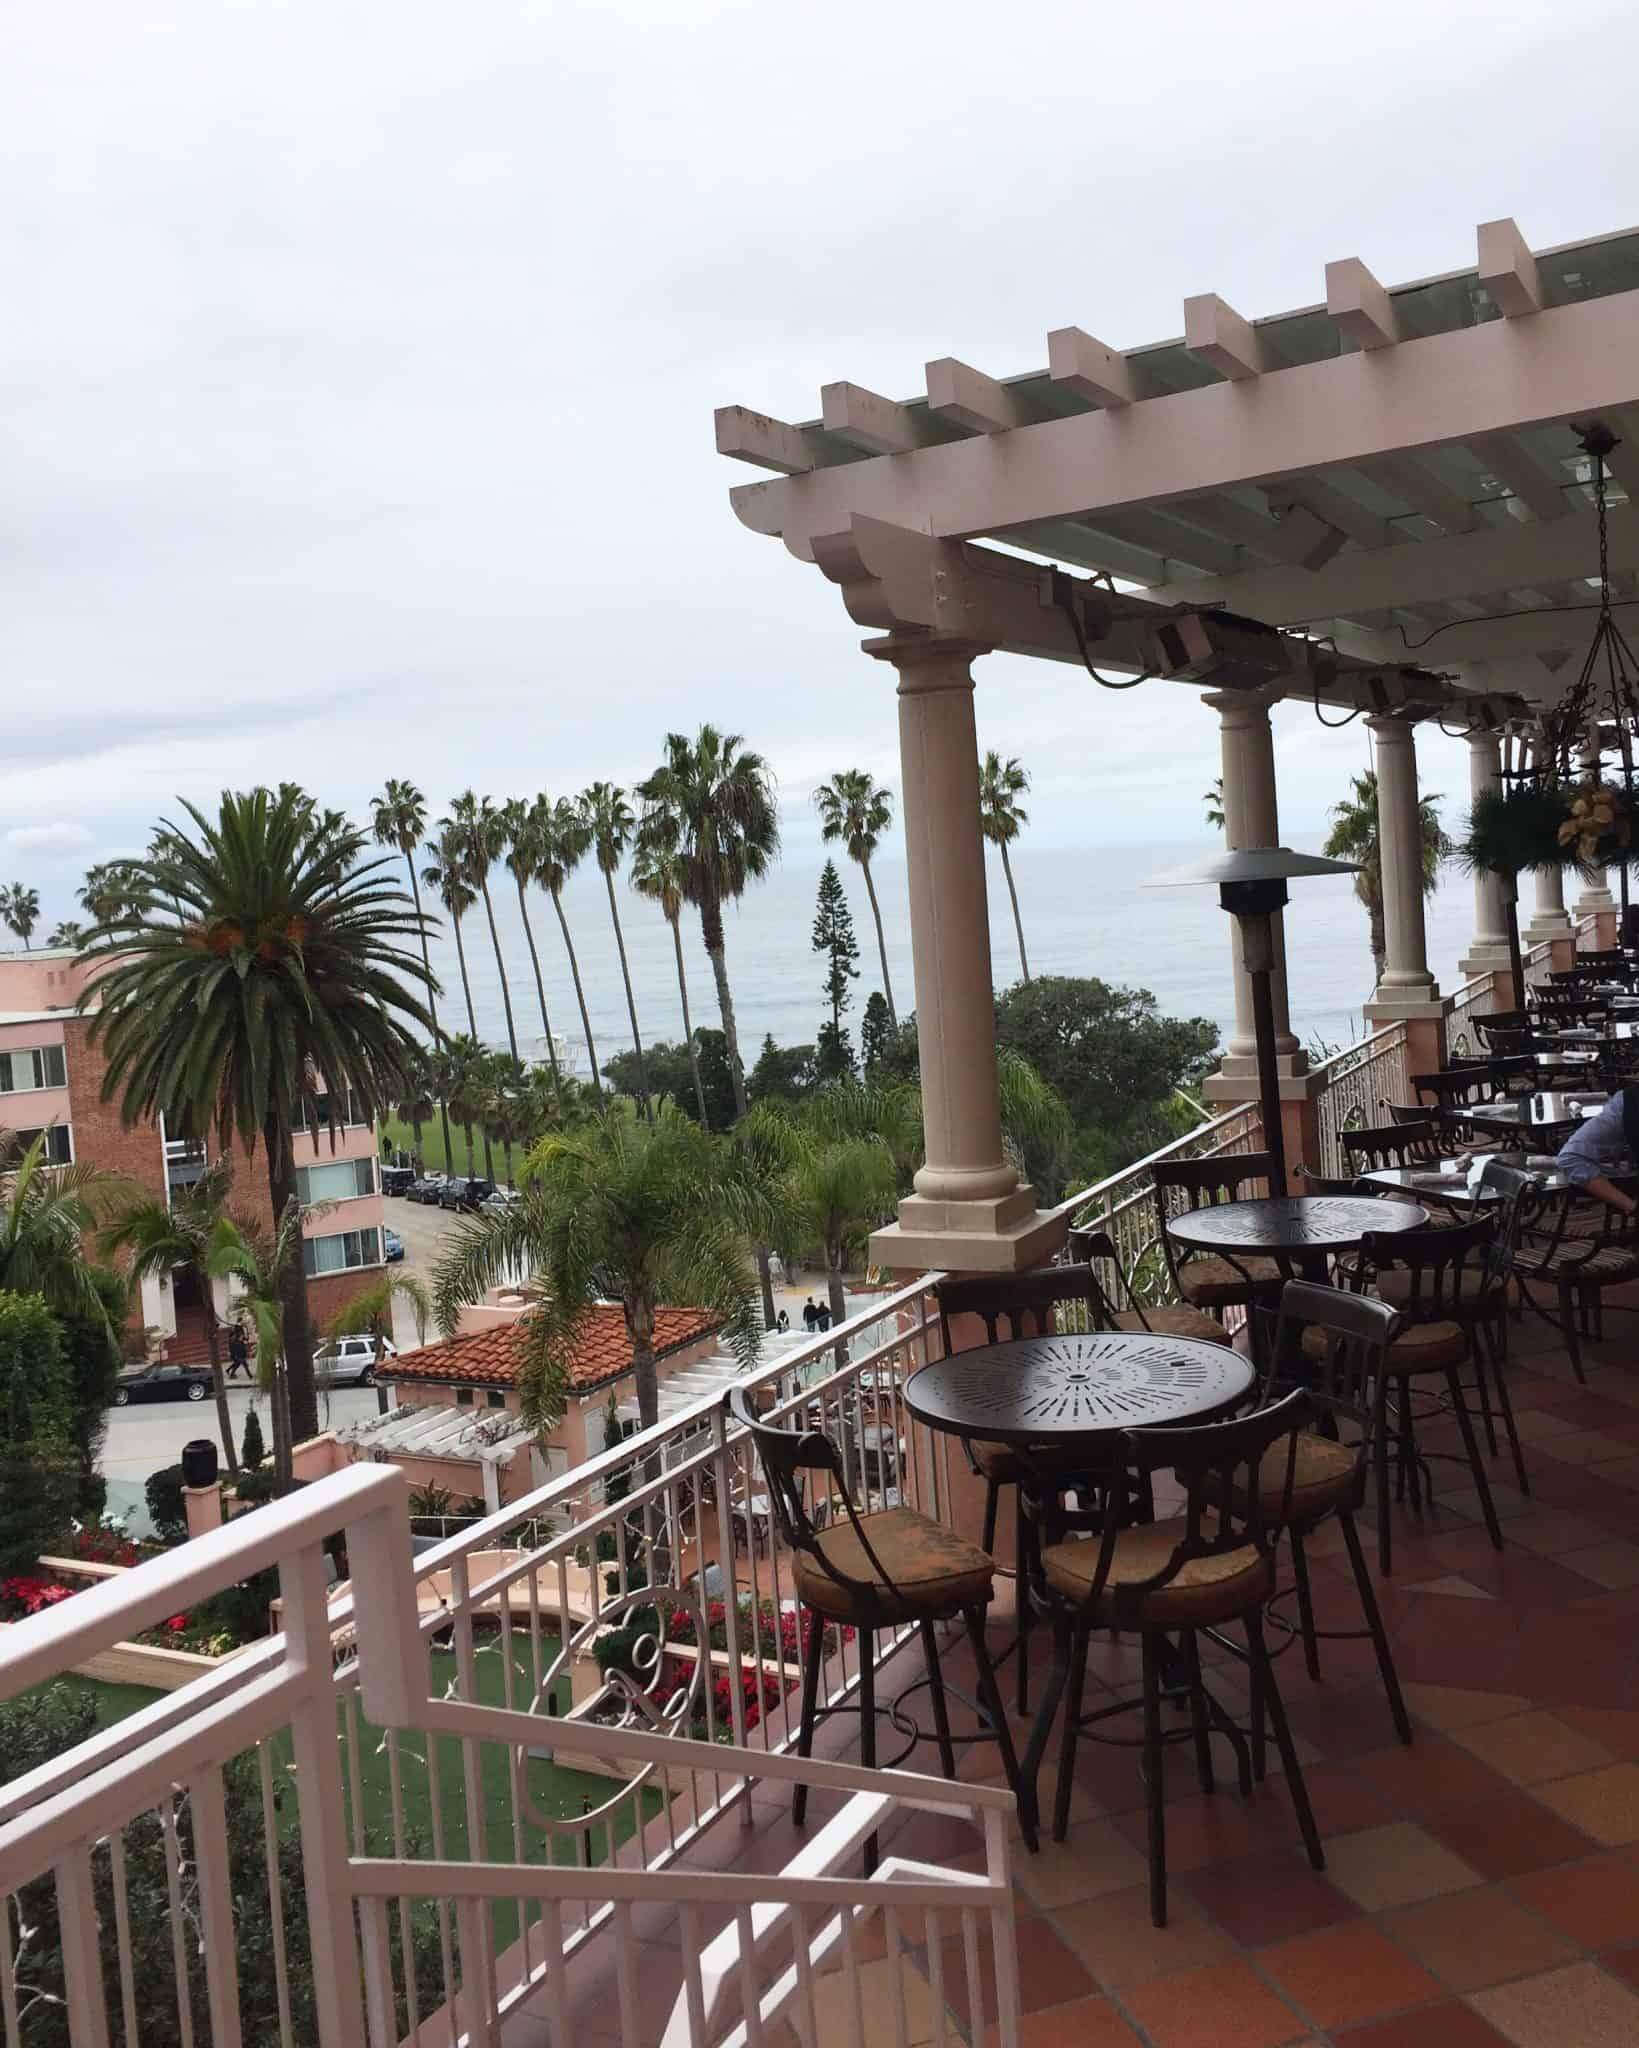 A Day Trip to La Jolla, California – A Must Travel Destination